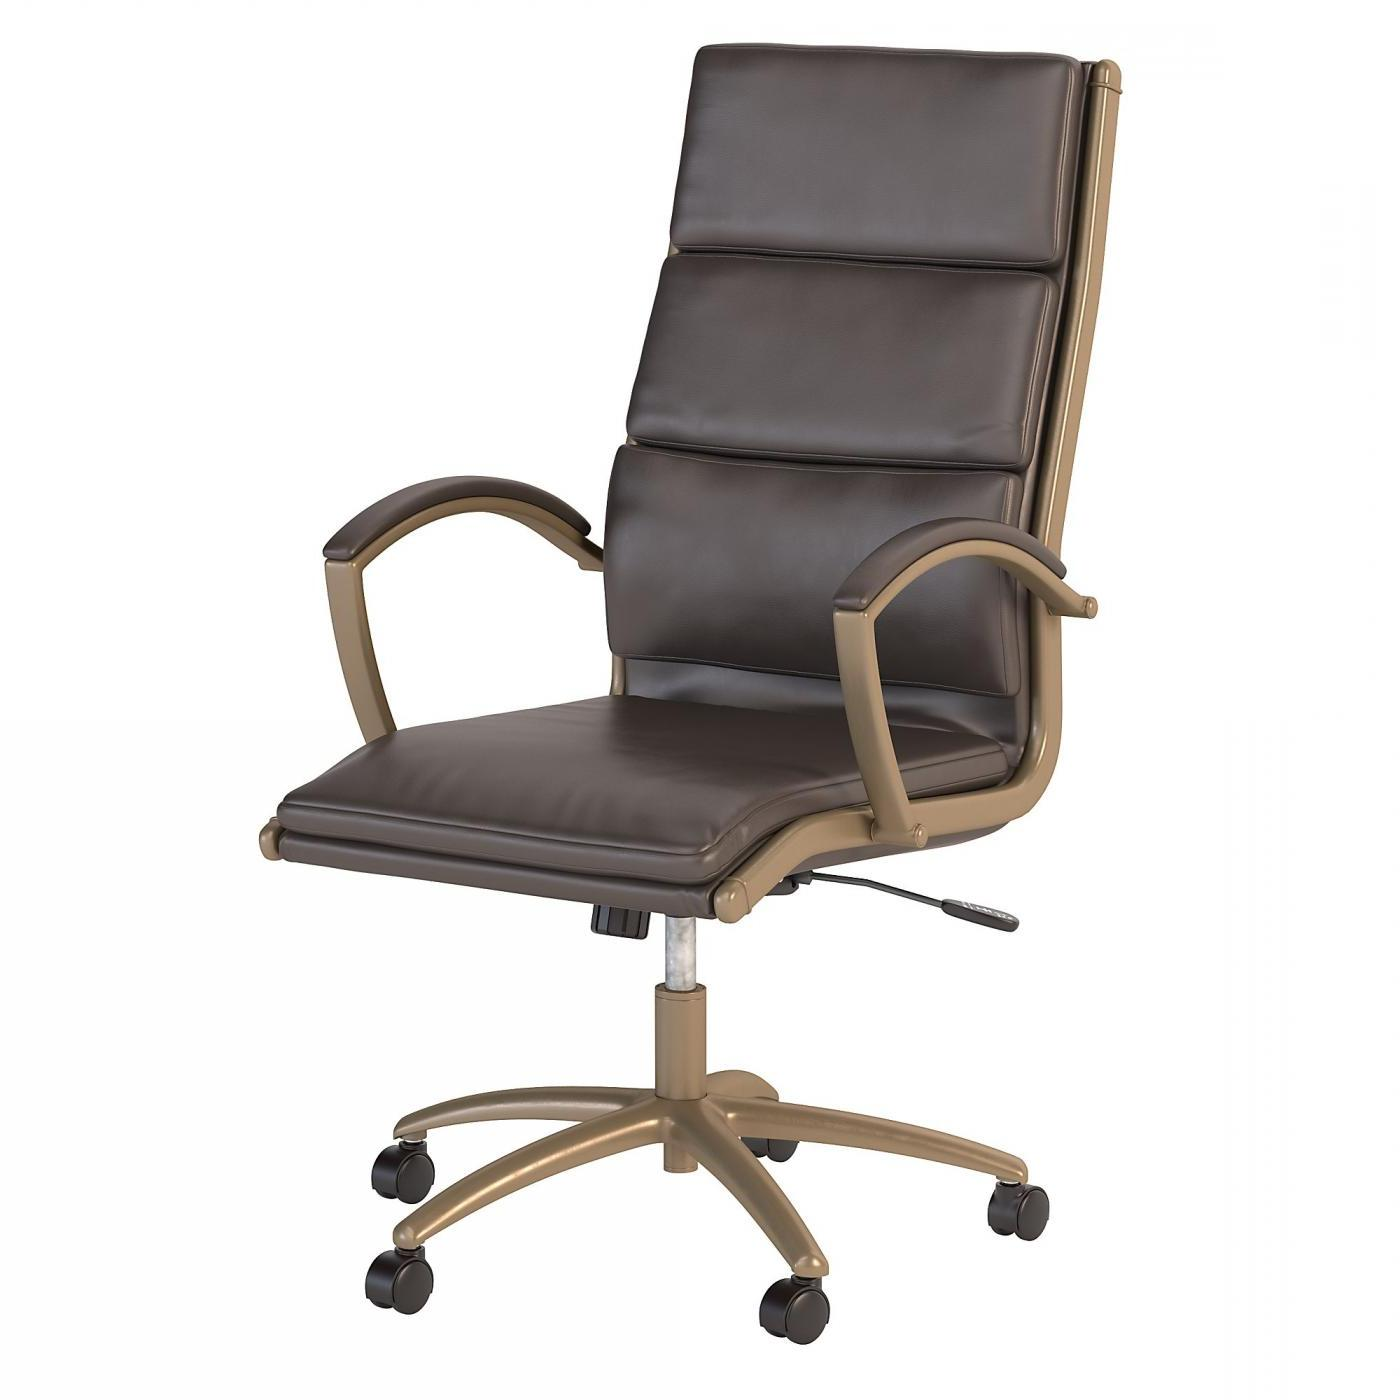 <font color=#c60><b>BUSH BUSINESS FURNITURE MODELO HIGH BACK LEATHER EXECUTIVE OFFICE CHAIR #EH-CH1701LBL-03. FREE SHIPPING:</font></b> </font></b>